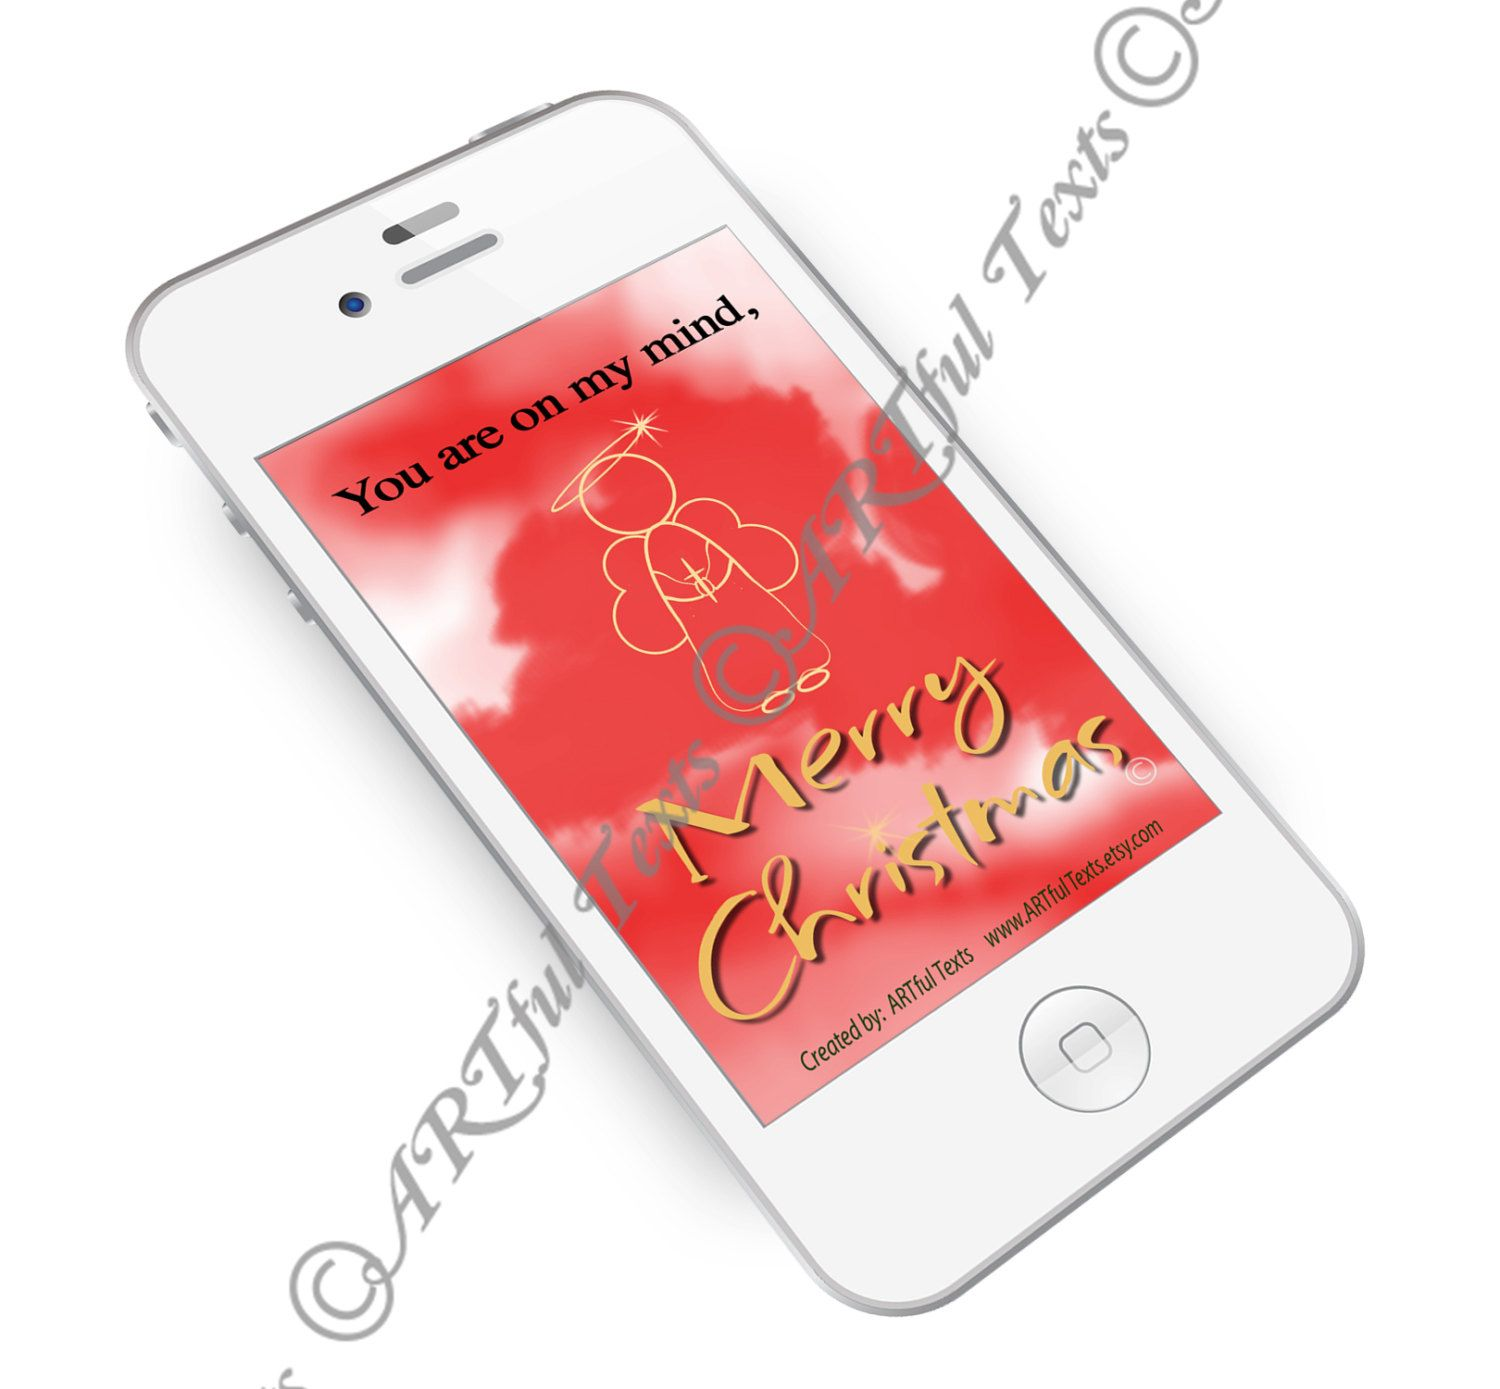 Text Message Picture Send A Text Message Picture Texts Text Message Phone Text Message Picture Mobile Phone Picture Text Message Clipart Text Pictures Christmas Text Messages Text Messages